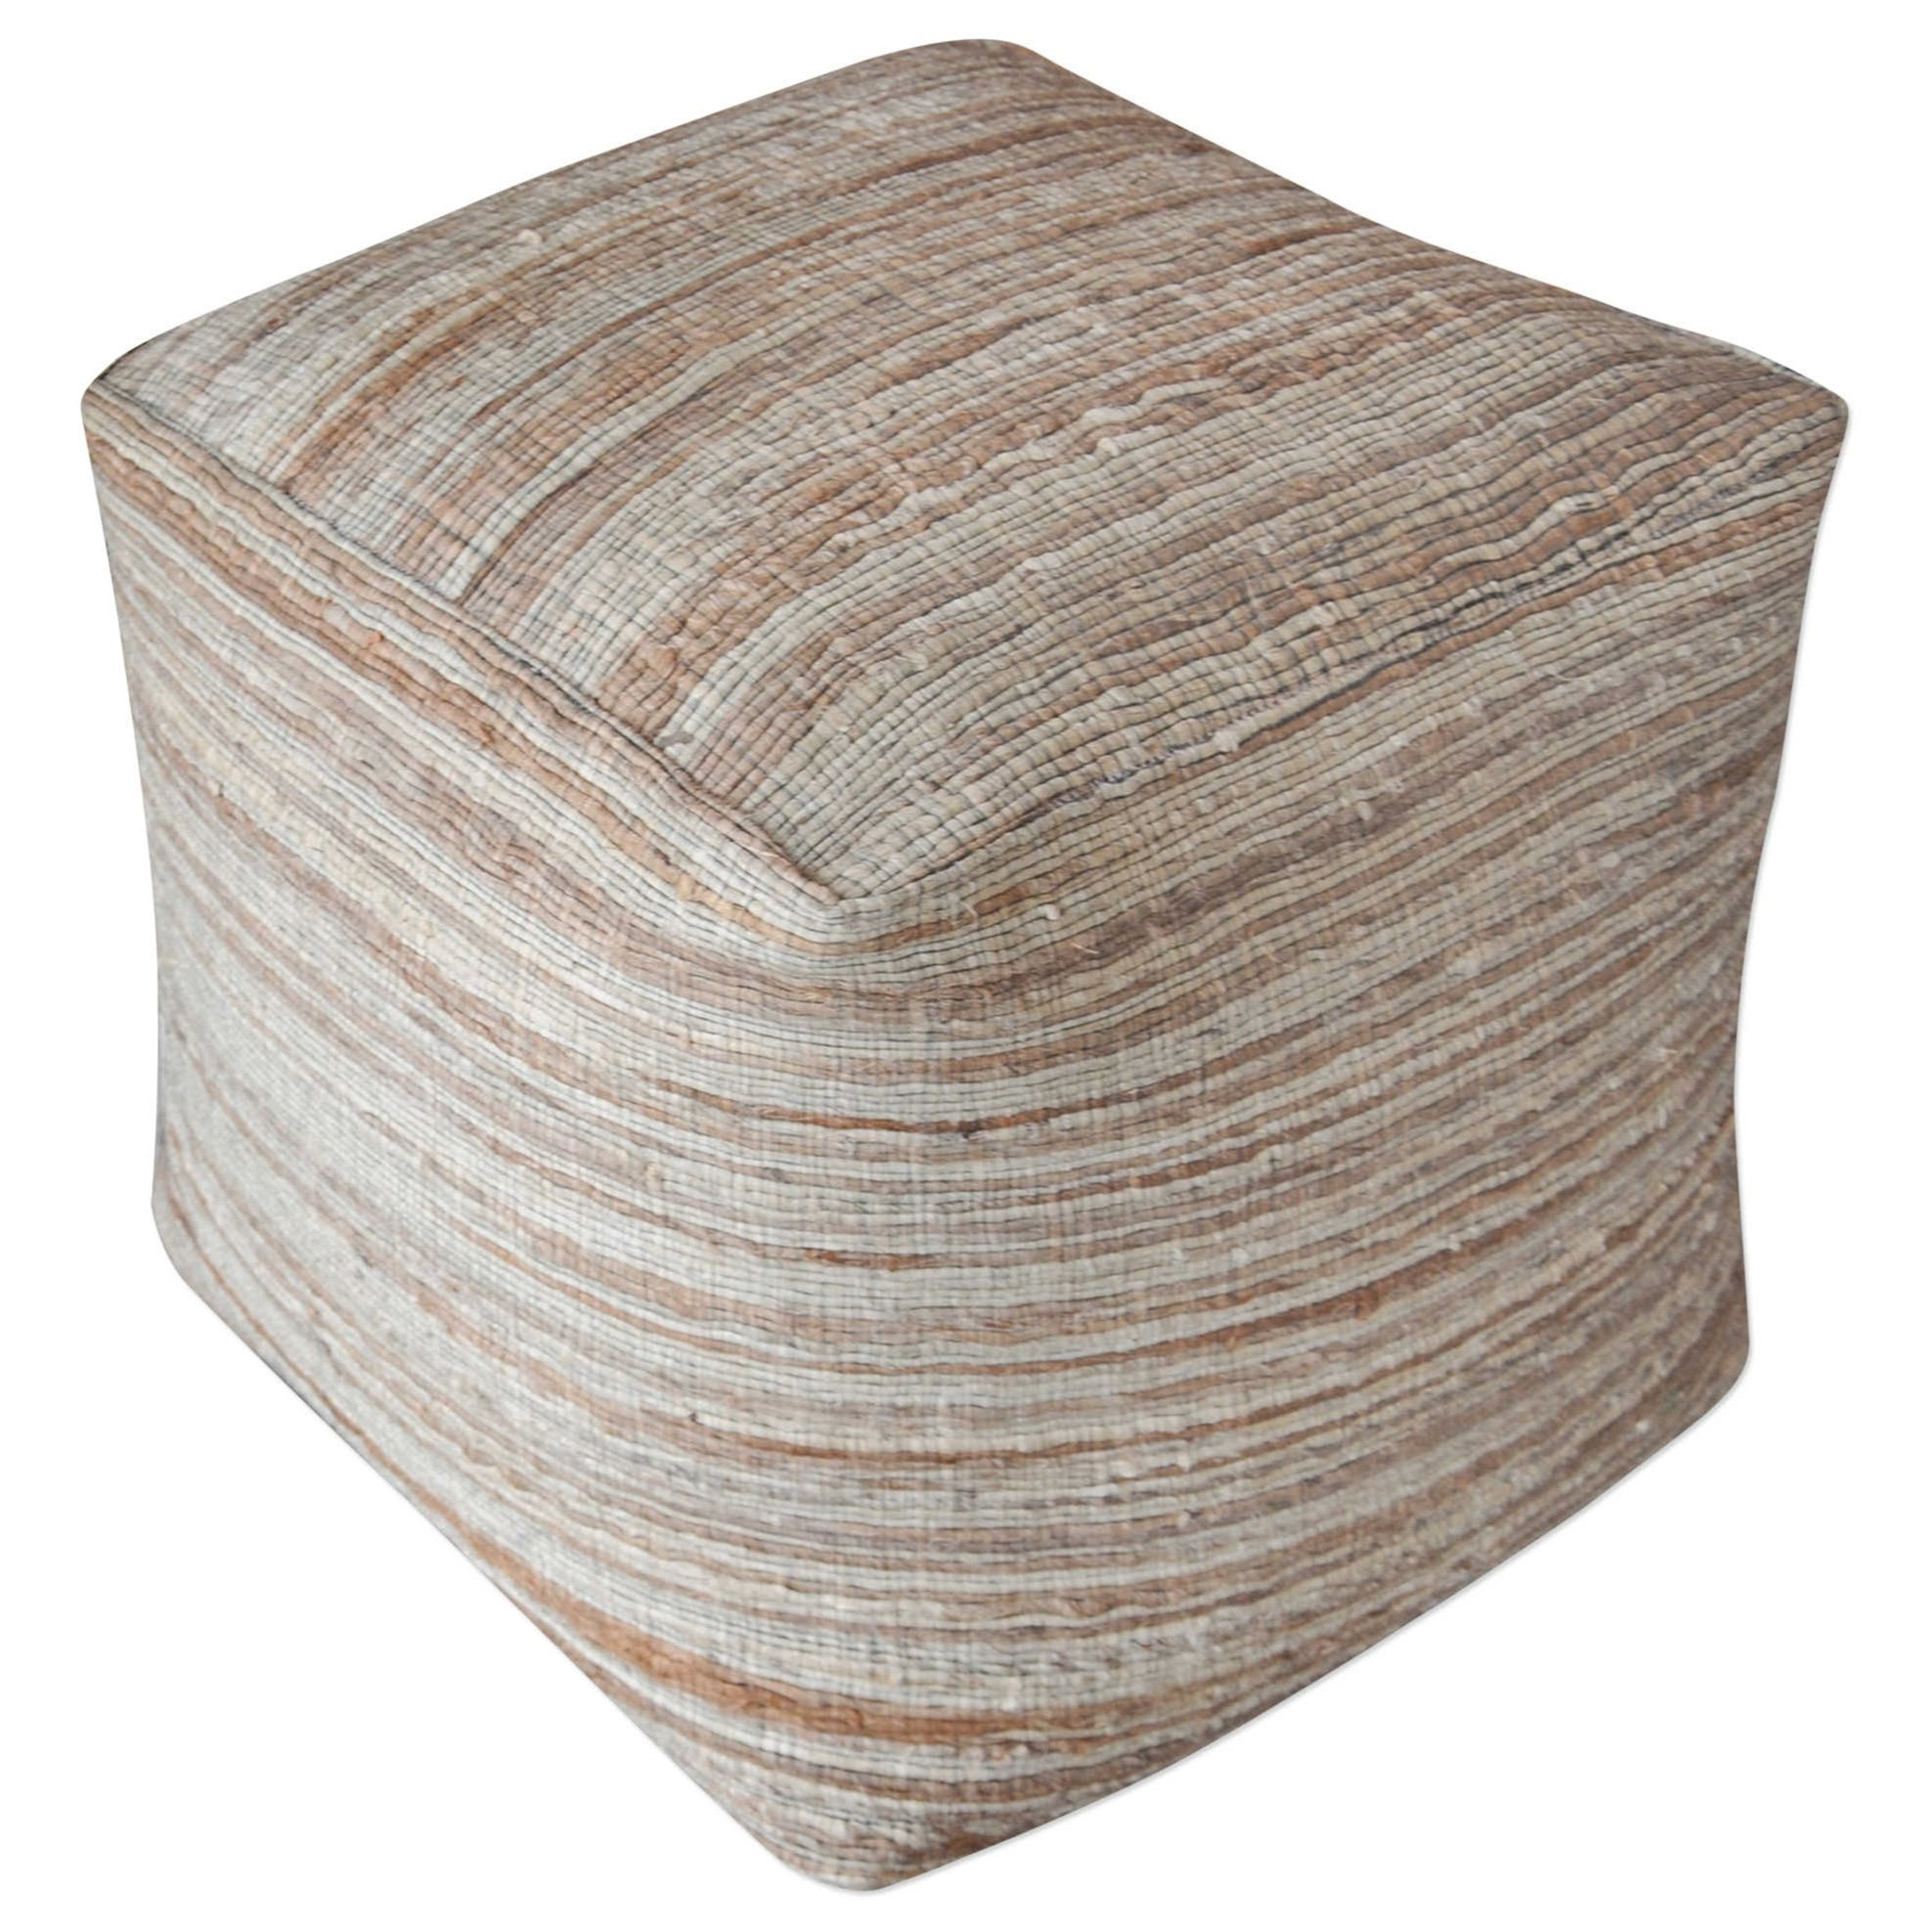 Accent Furniture - Ottomans Shiro Beige Pouf at Becker Furniture